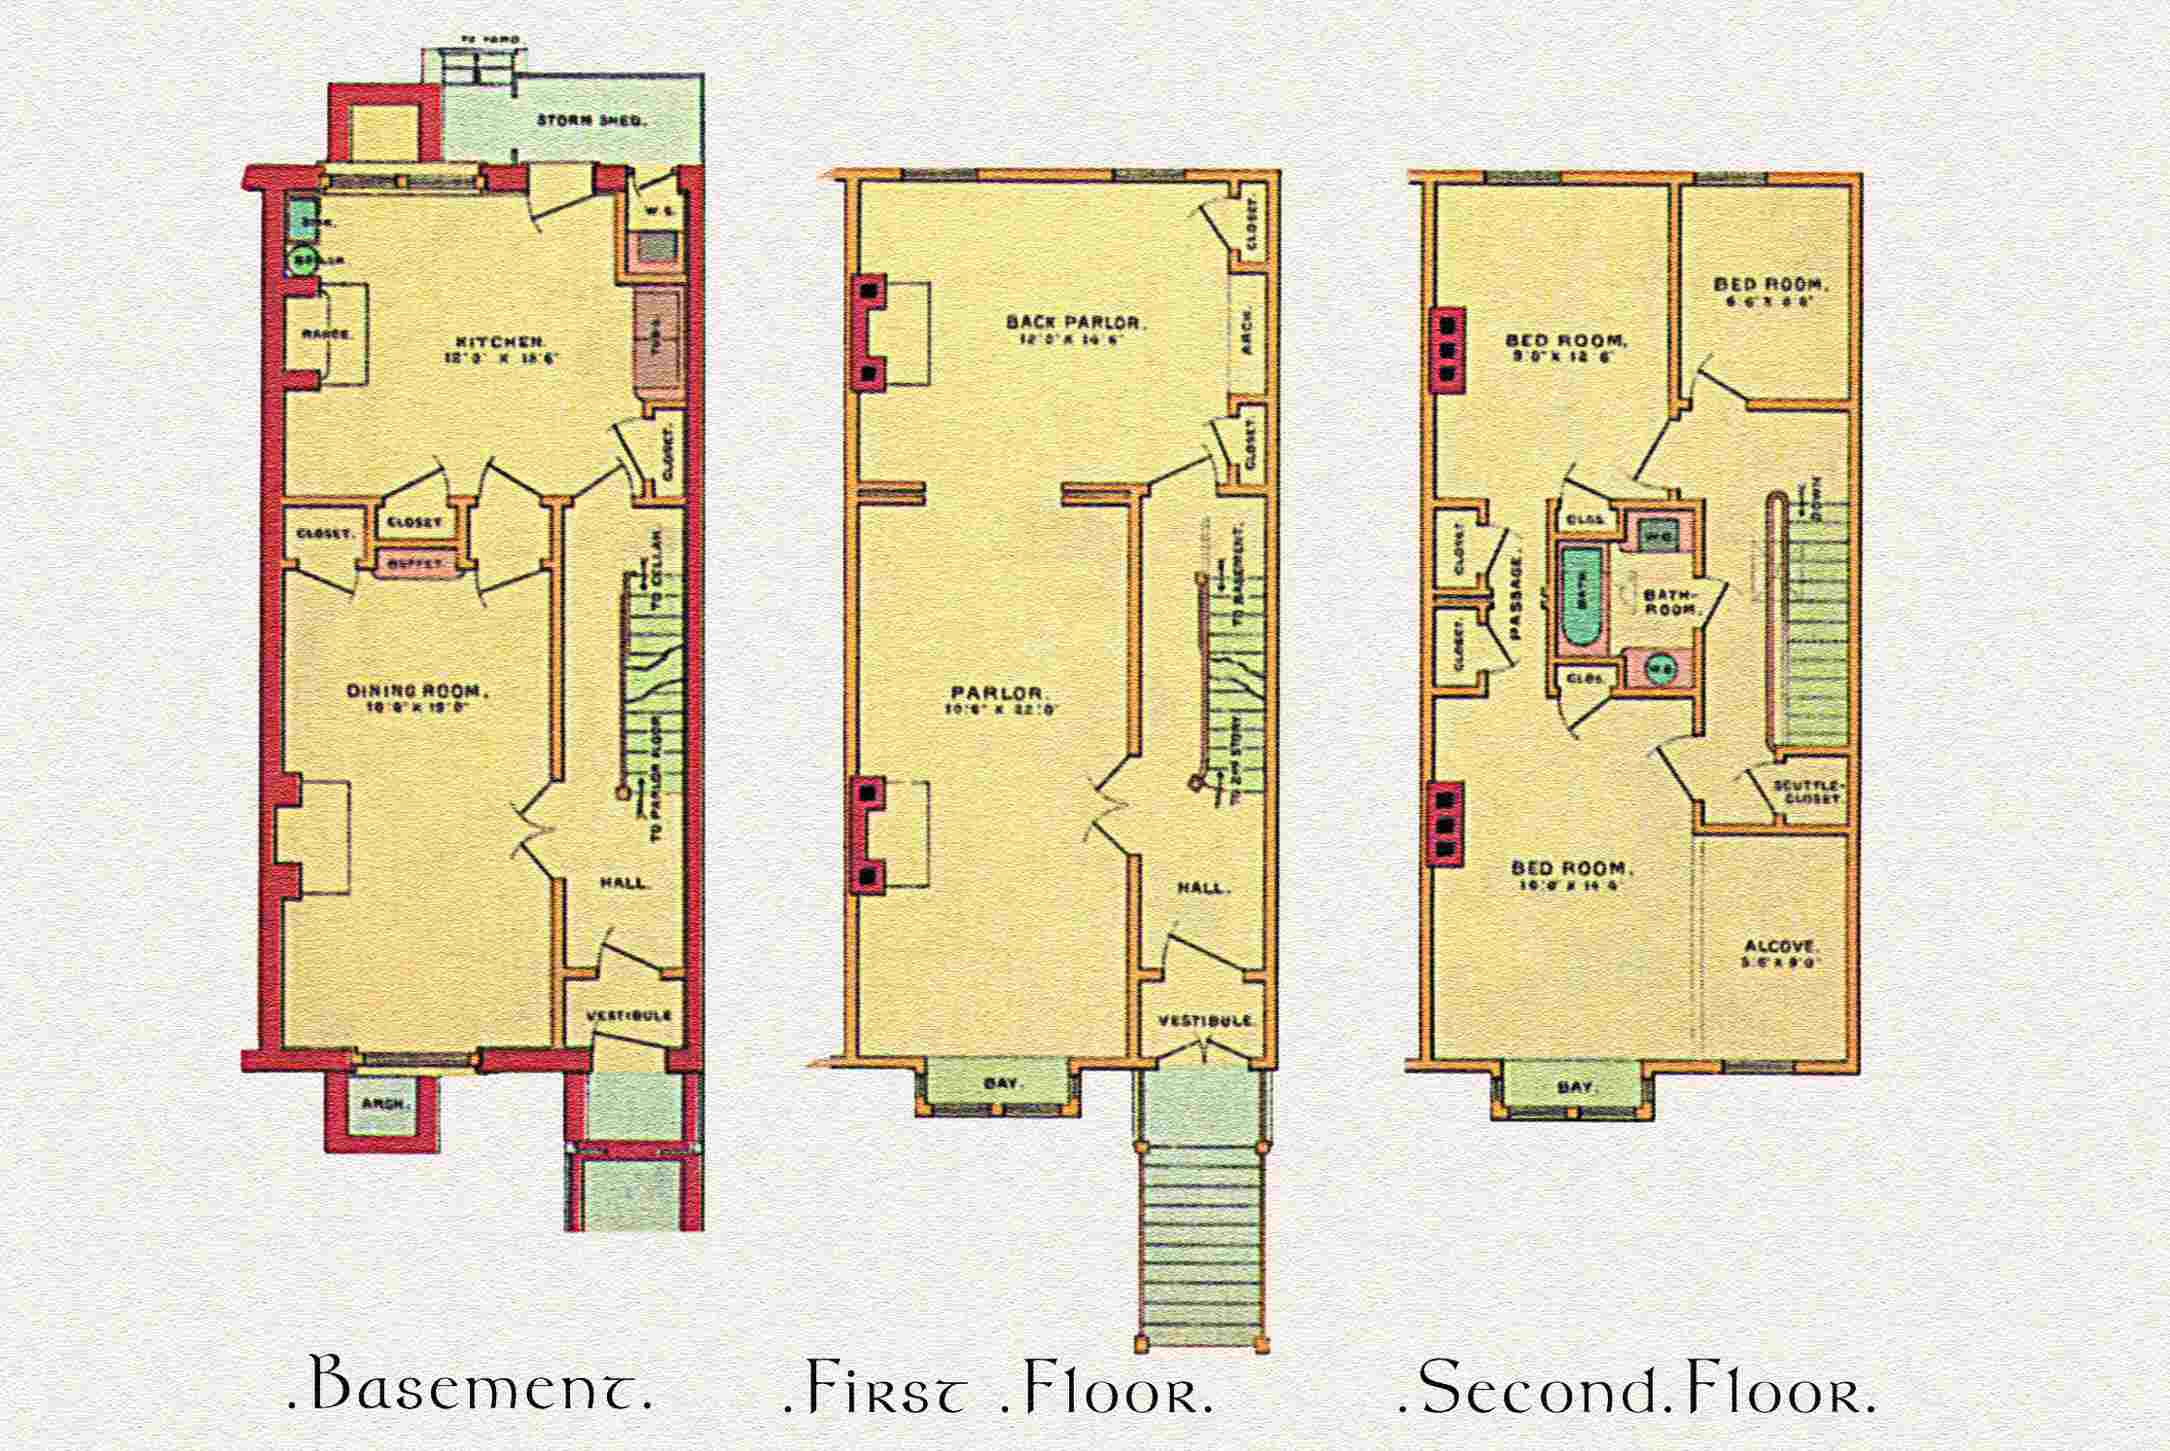 Linear architectural plan and layout for a Victorian townhouse, c. 1887, basement, first floor, and second floor plans illustrated